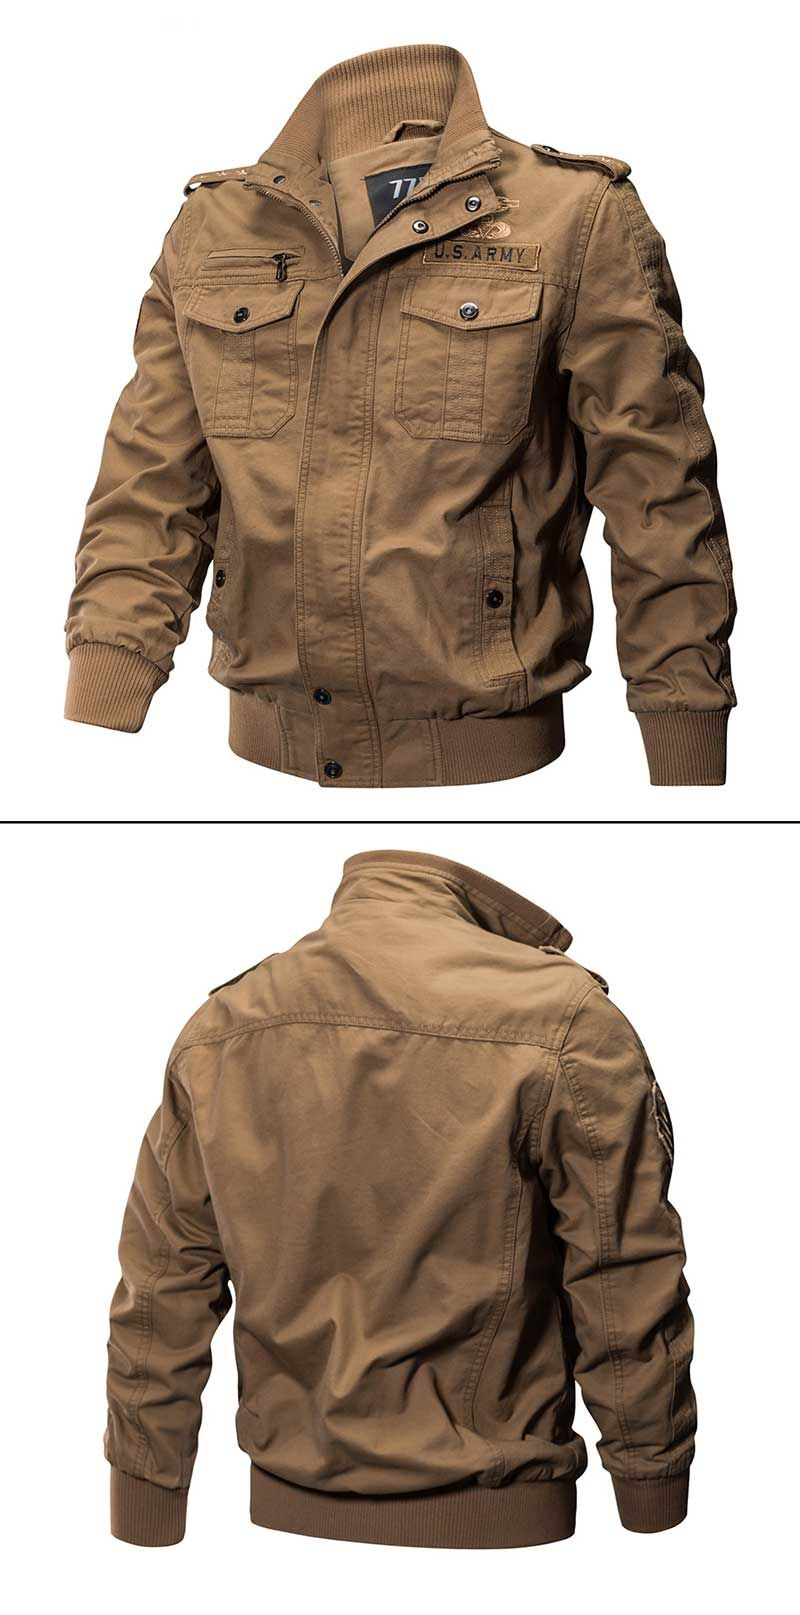 Washed Cotton Military Tactical Jacket Cool Jackets For Men Tactical Jacket Mens Jackets [ 1615 x 800 Pixel ]